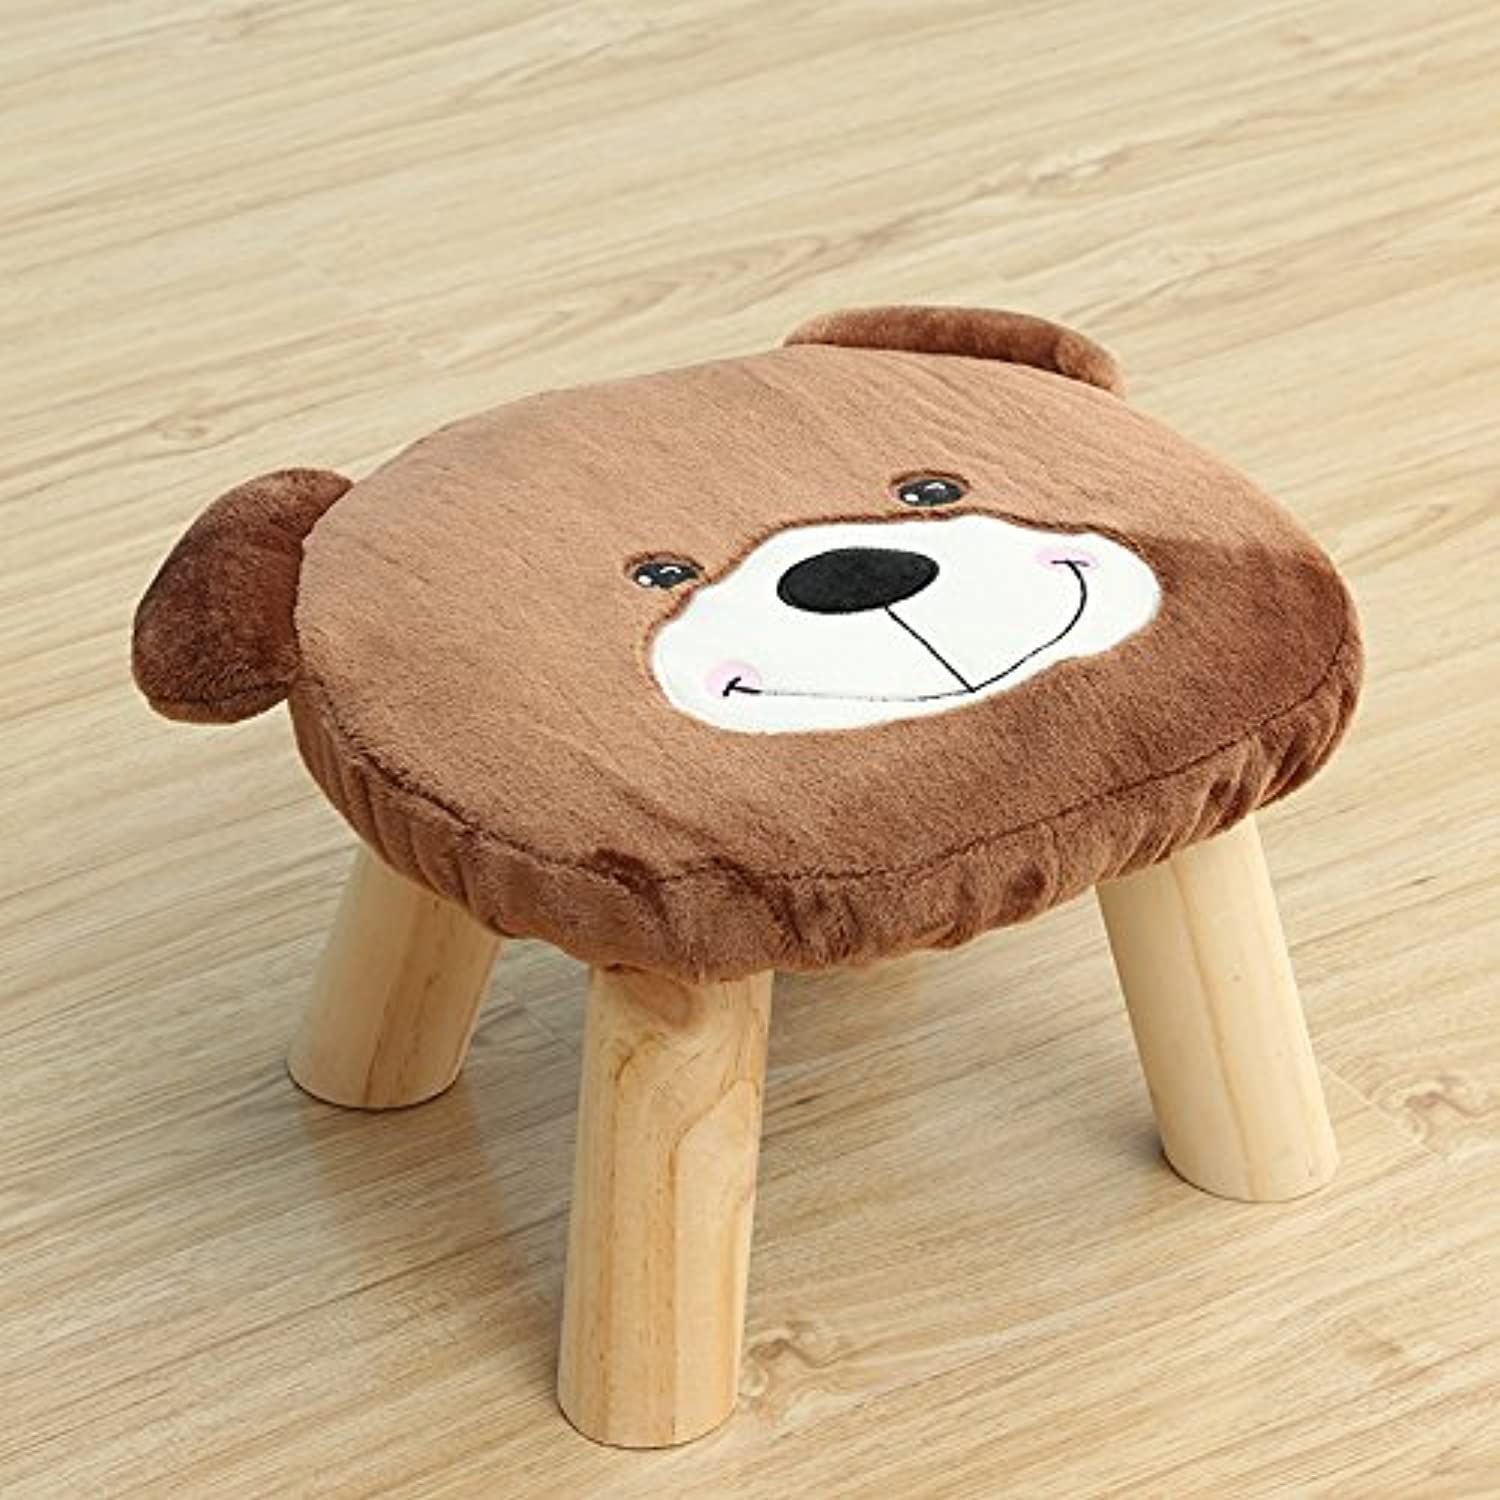 Dana Carrie Stool Solid Wood Cartoon Party is The Art of Tea a Couple of Small Chairs Sofas stools for shoes of Small Benches, Brown